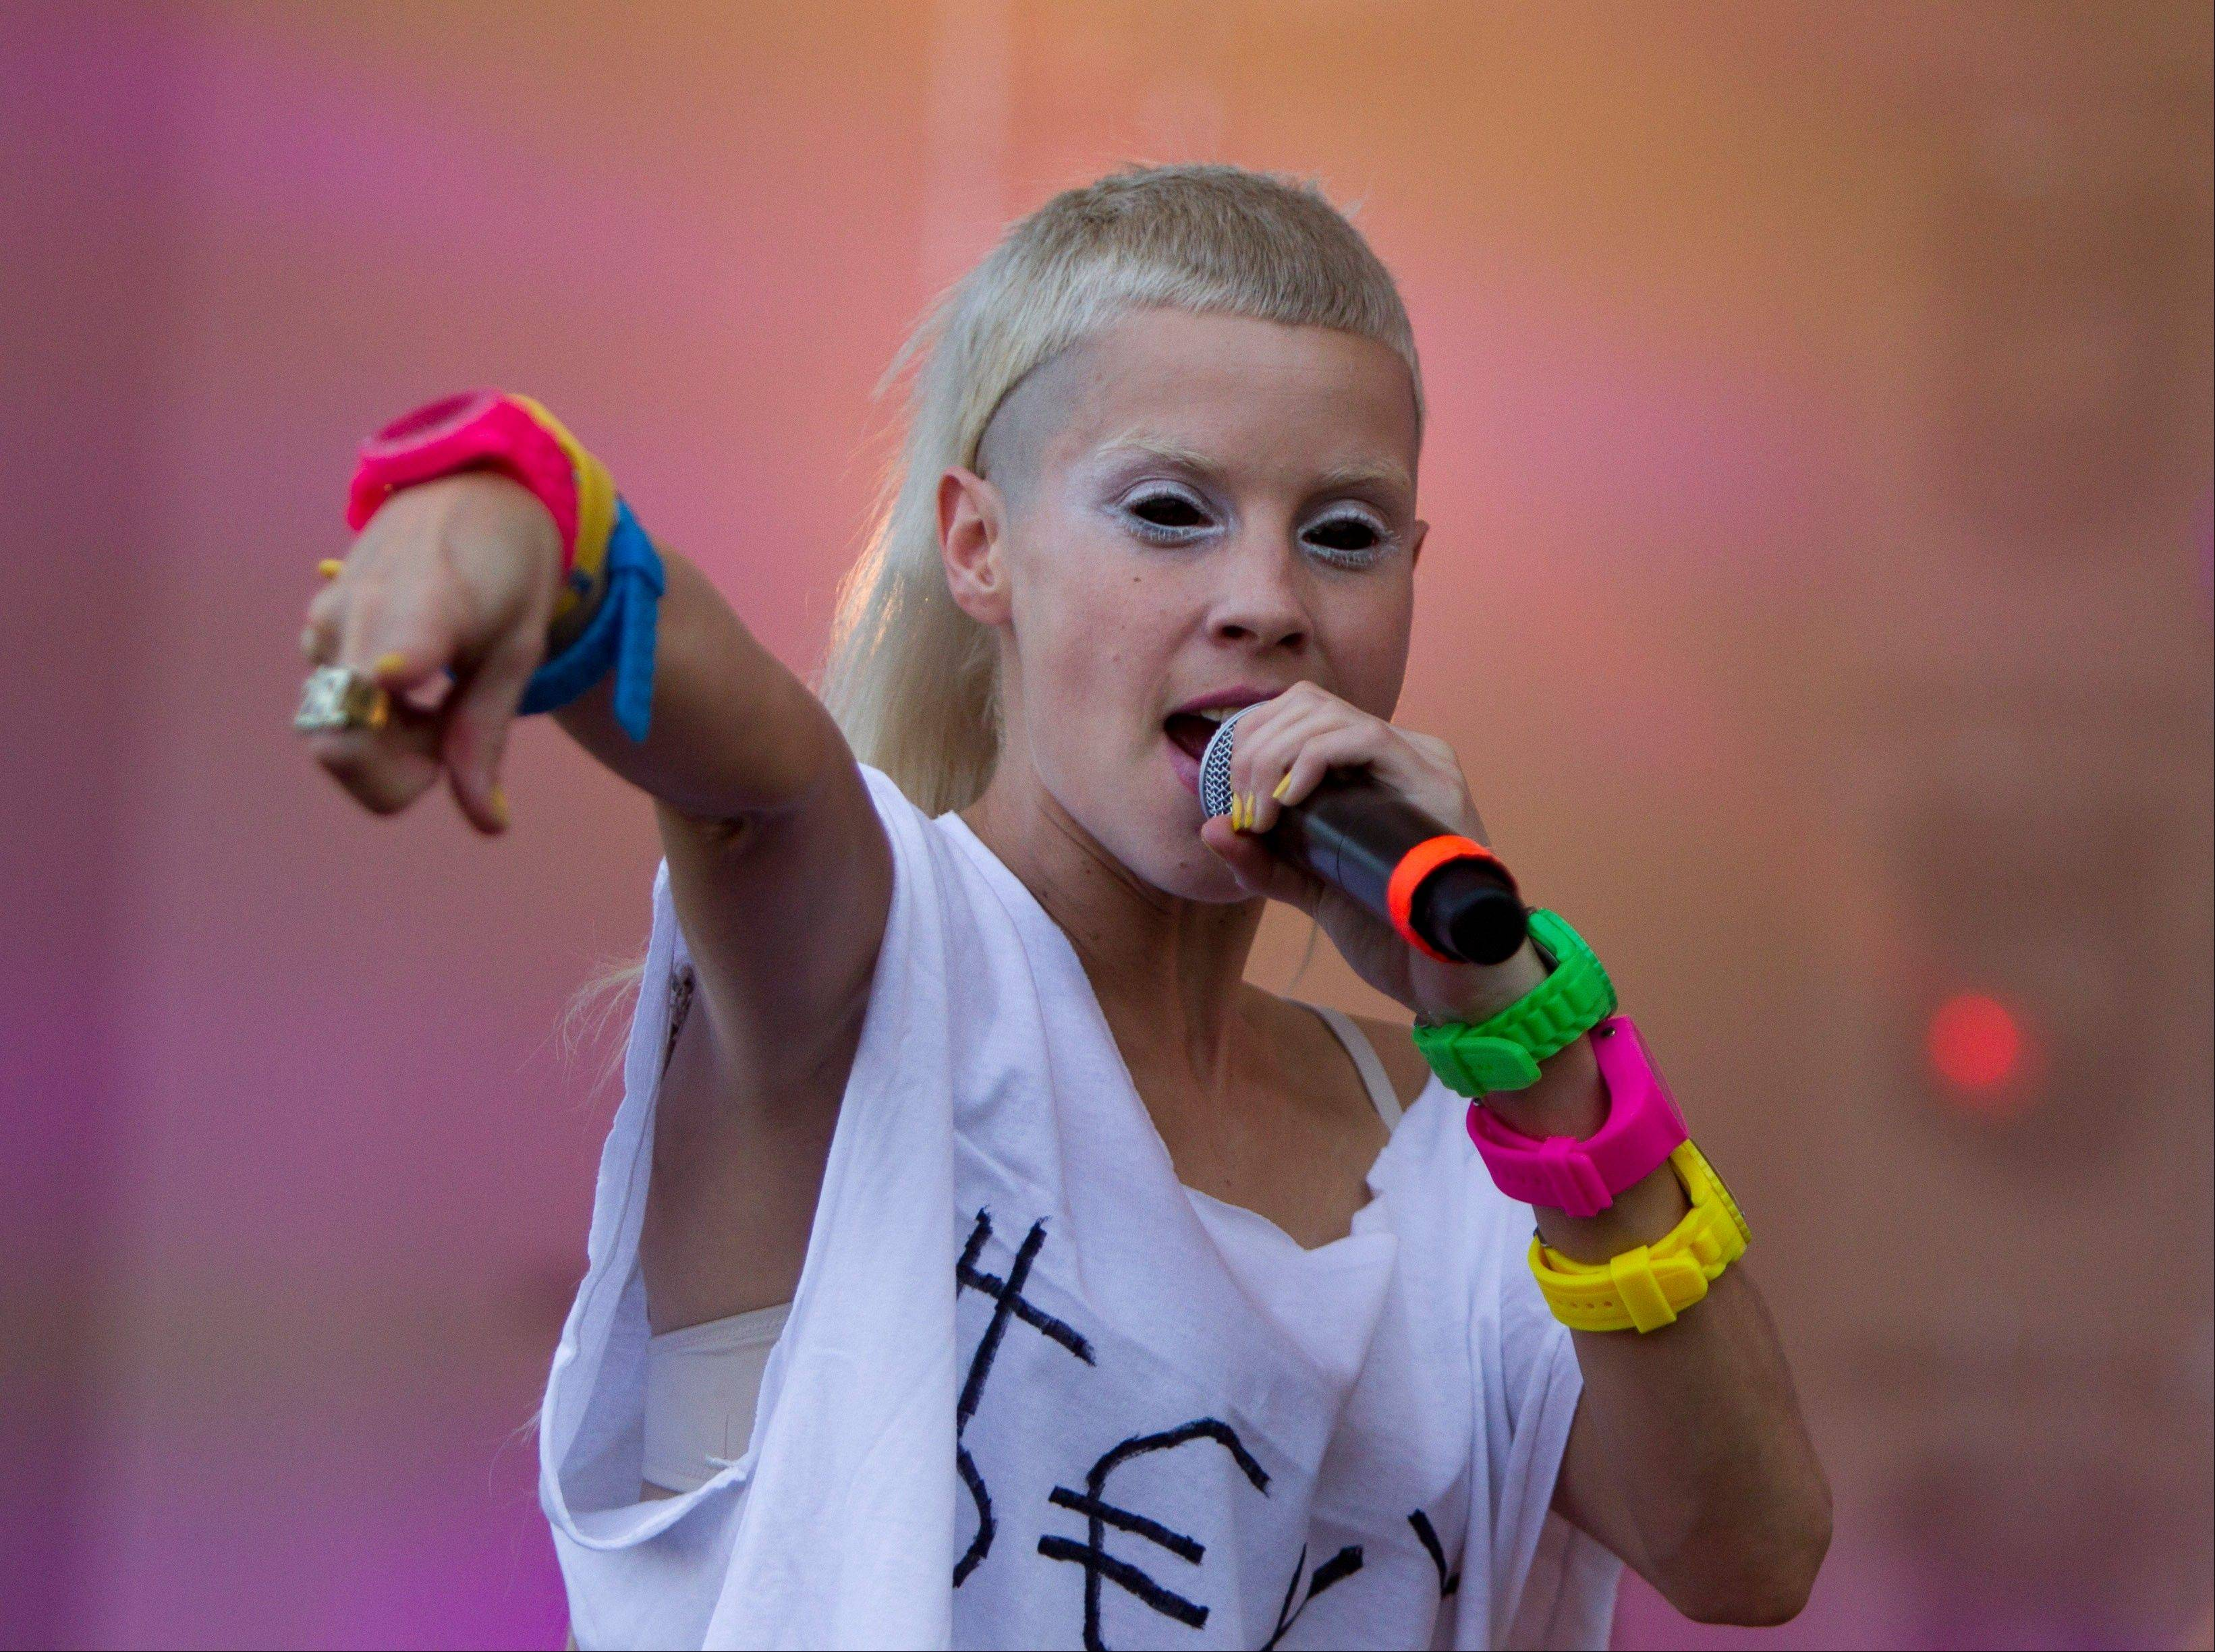 Yolandi Vi$$er from Die Antwoord performs at Lollapalooza in Chicago's Grant Park on Friday, Aug. 3, 2012.